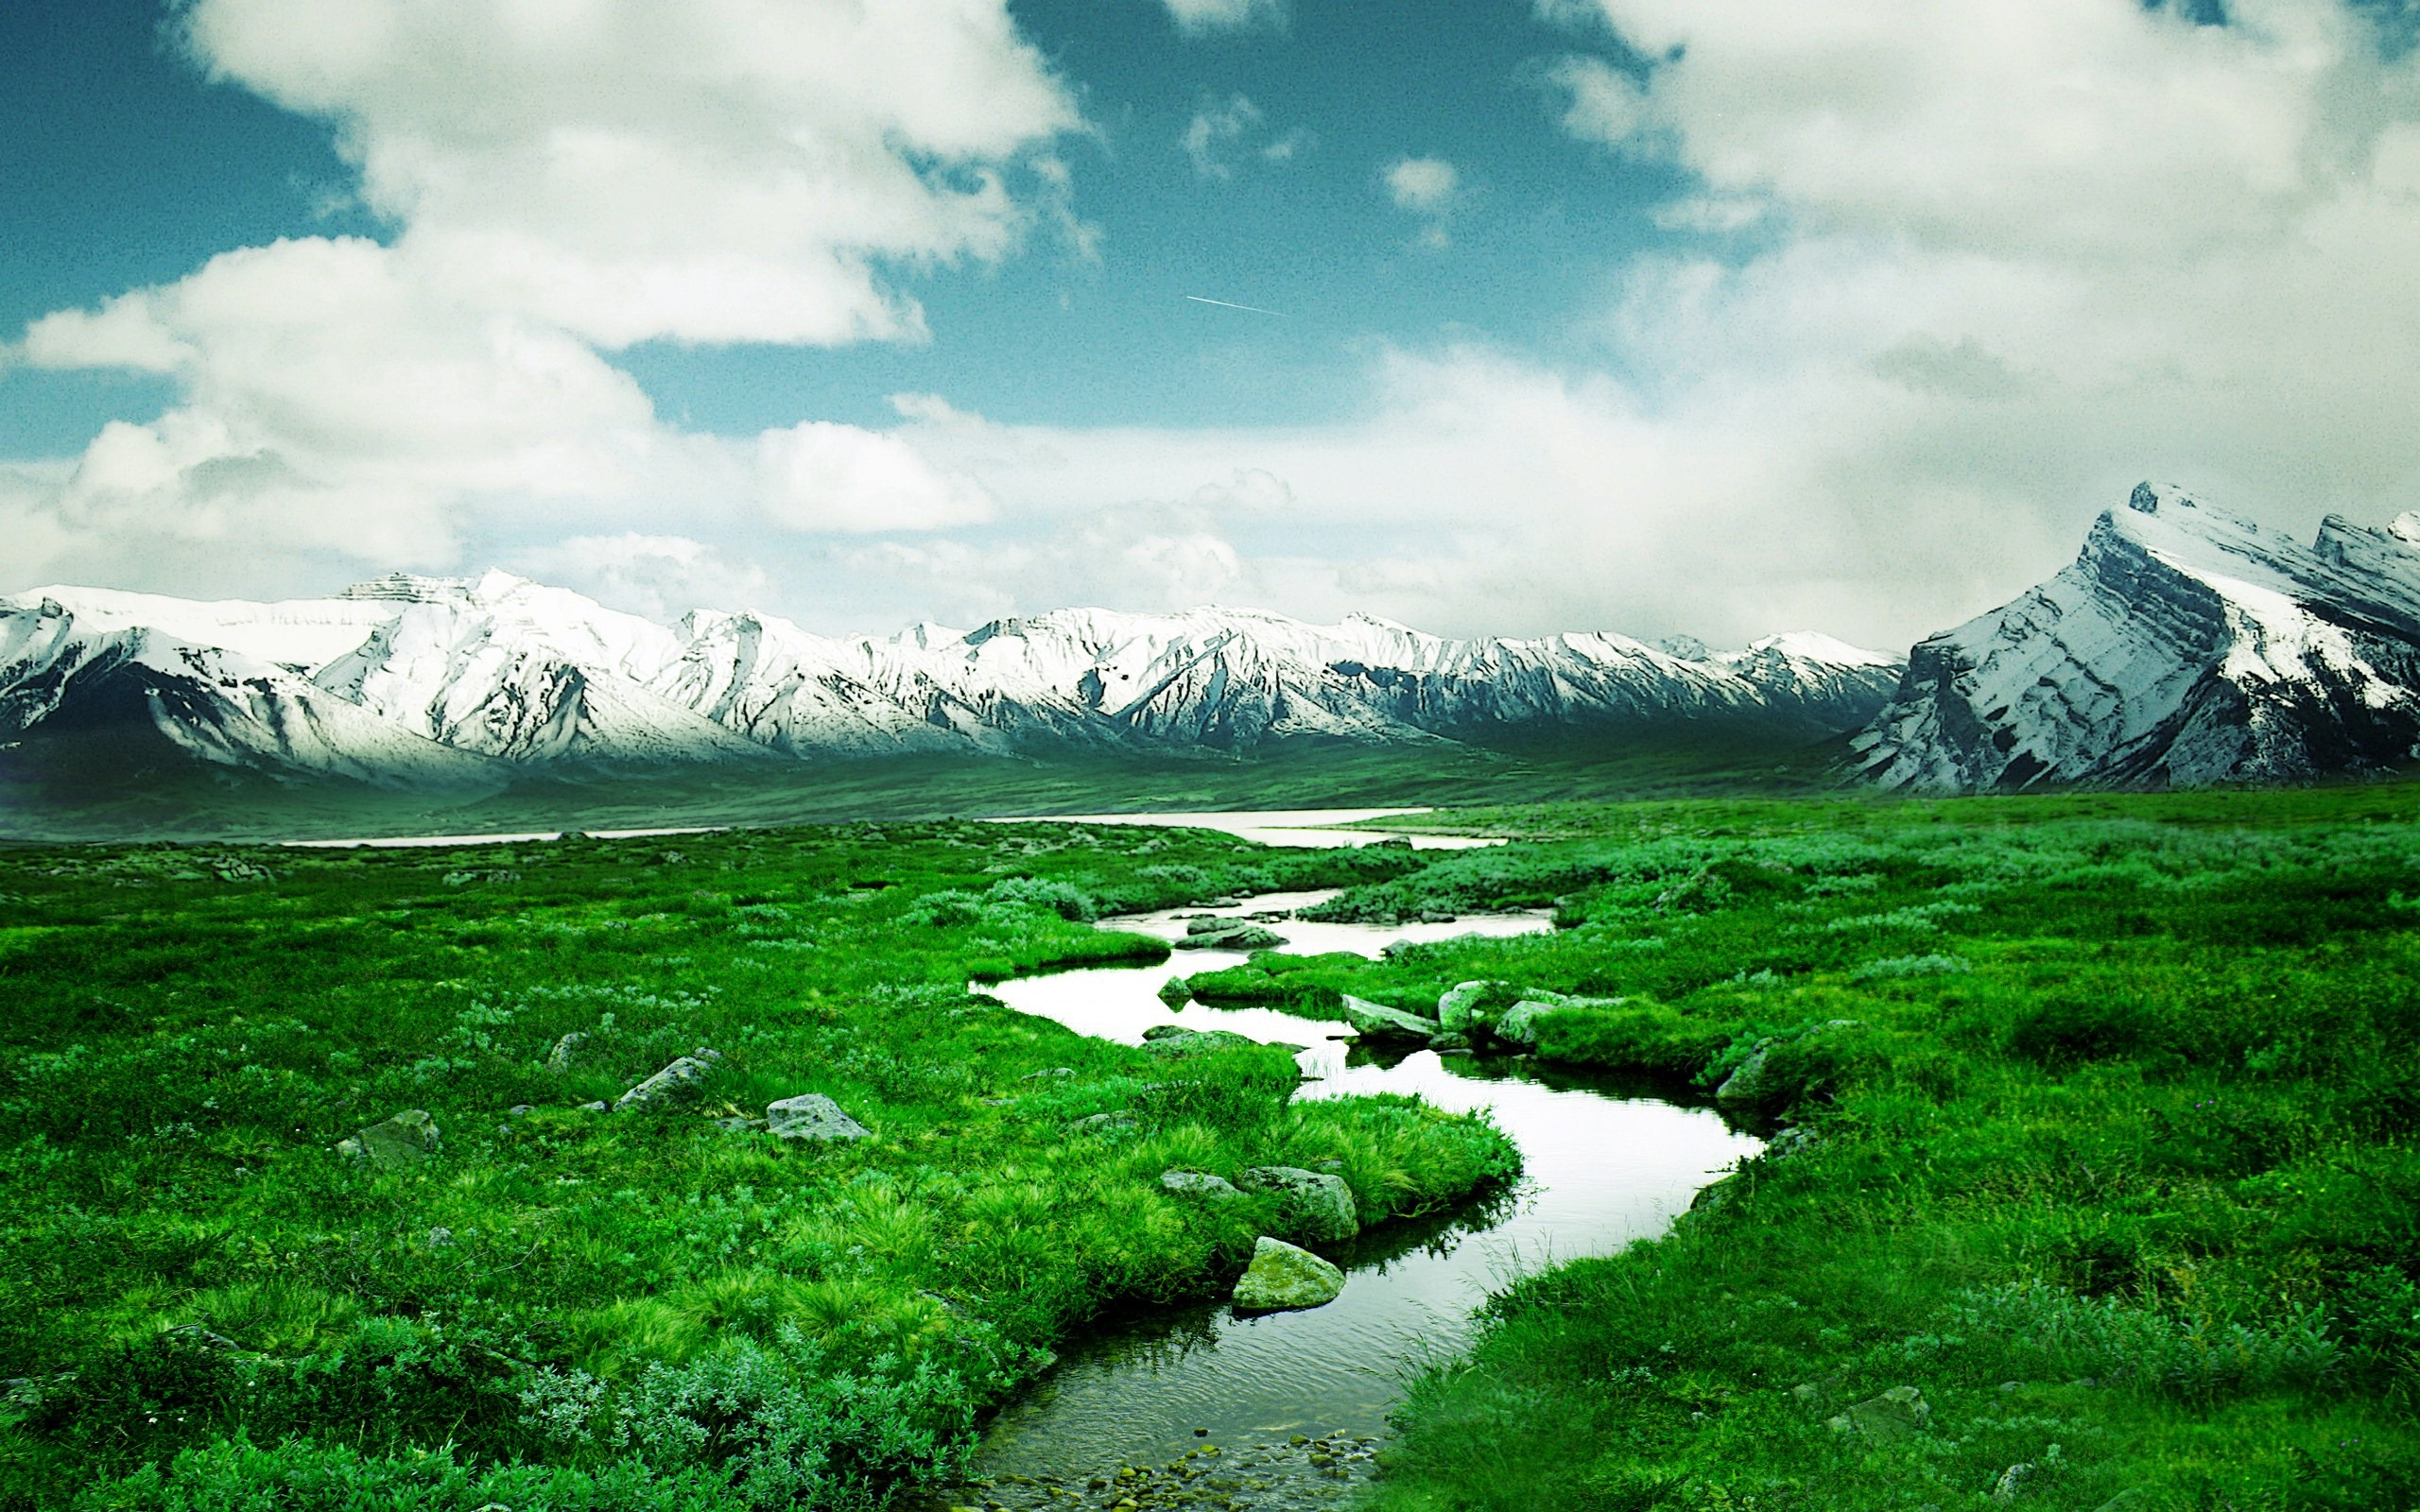 Desktop Backgrounds HD - HD Wallpapers Backgrounds of Your Choice